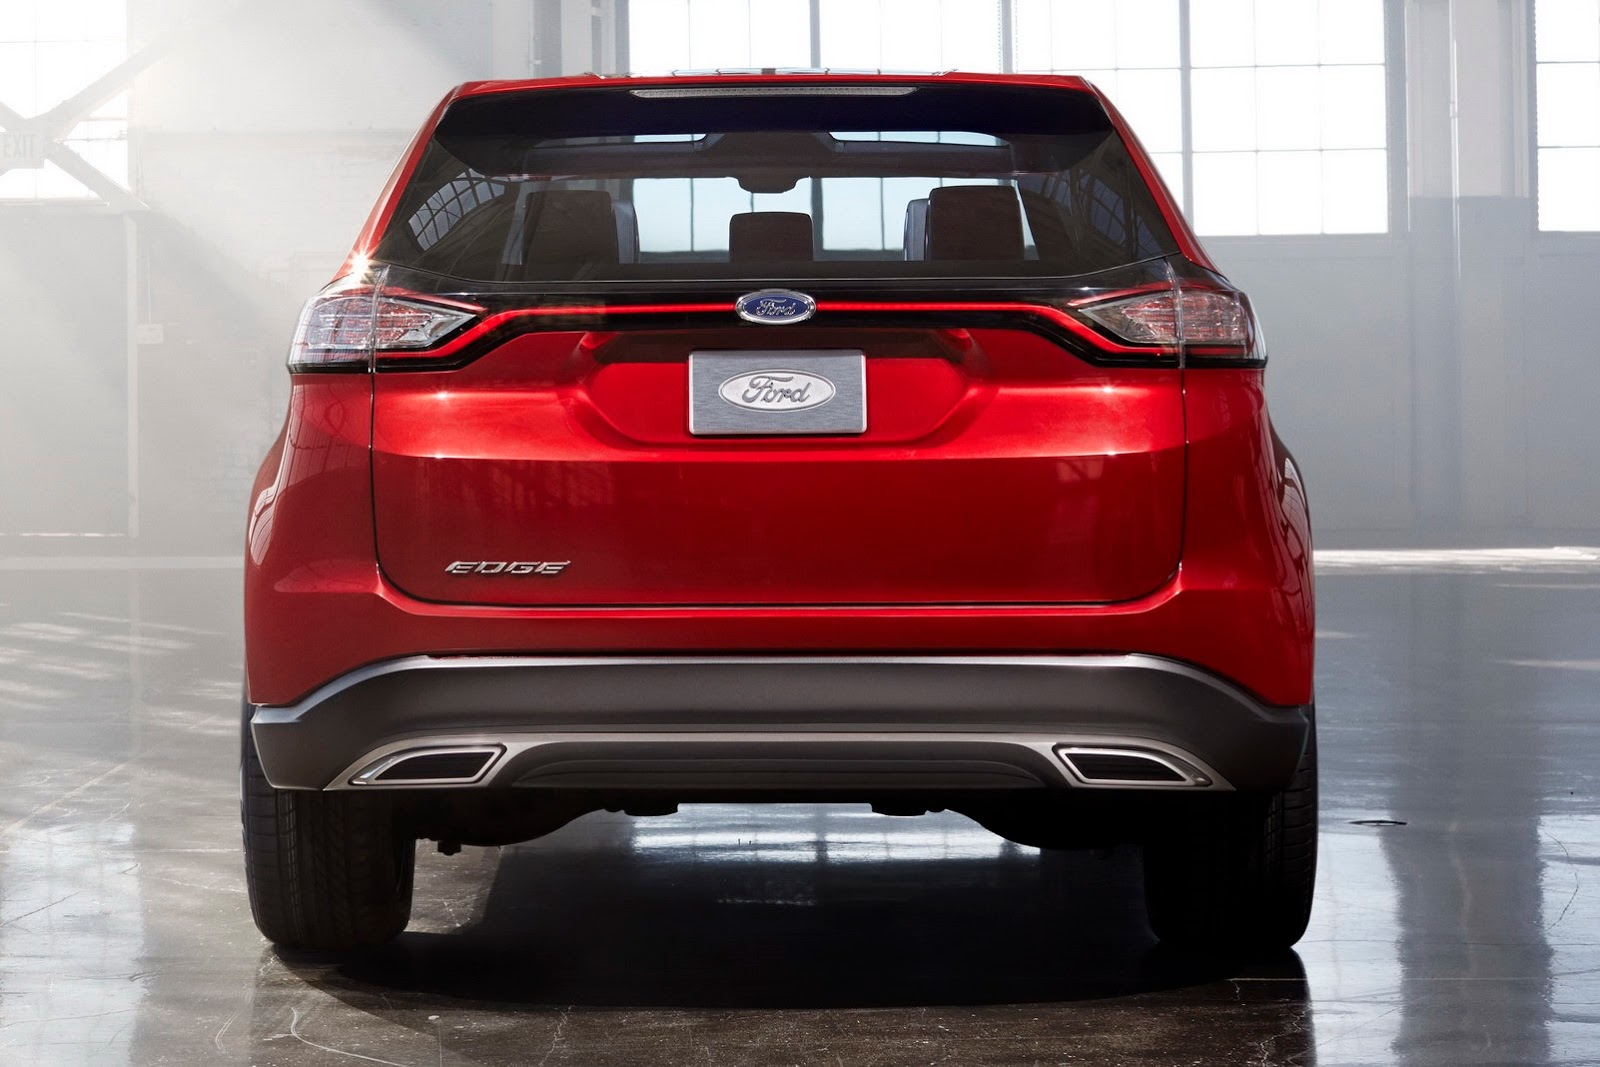 2014_ford_edge_territory_concept_06